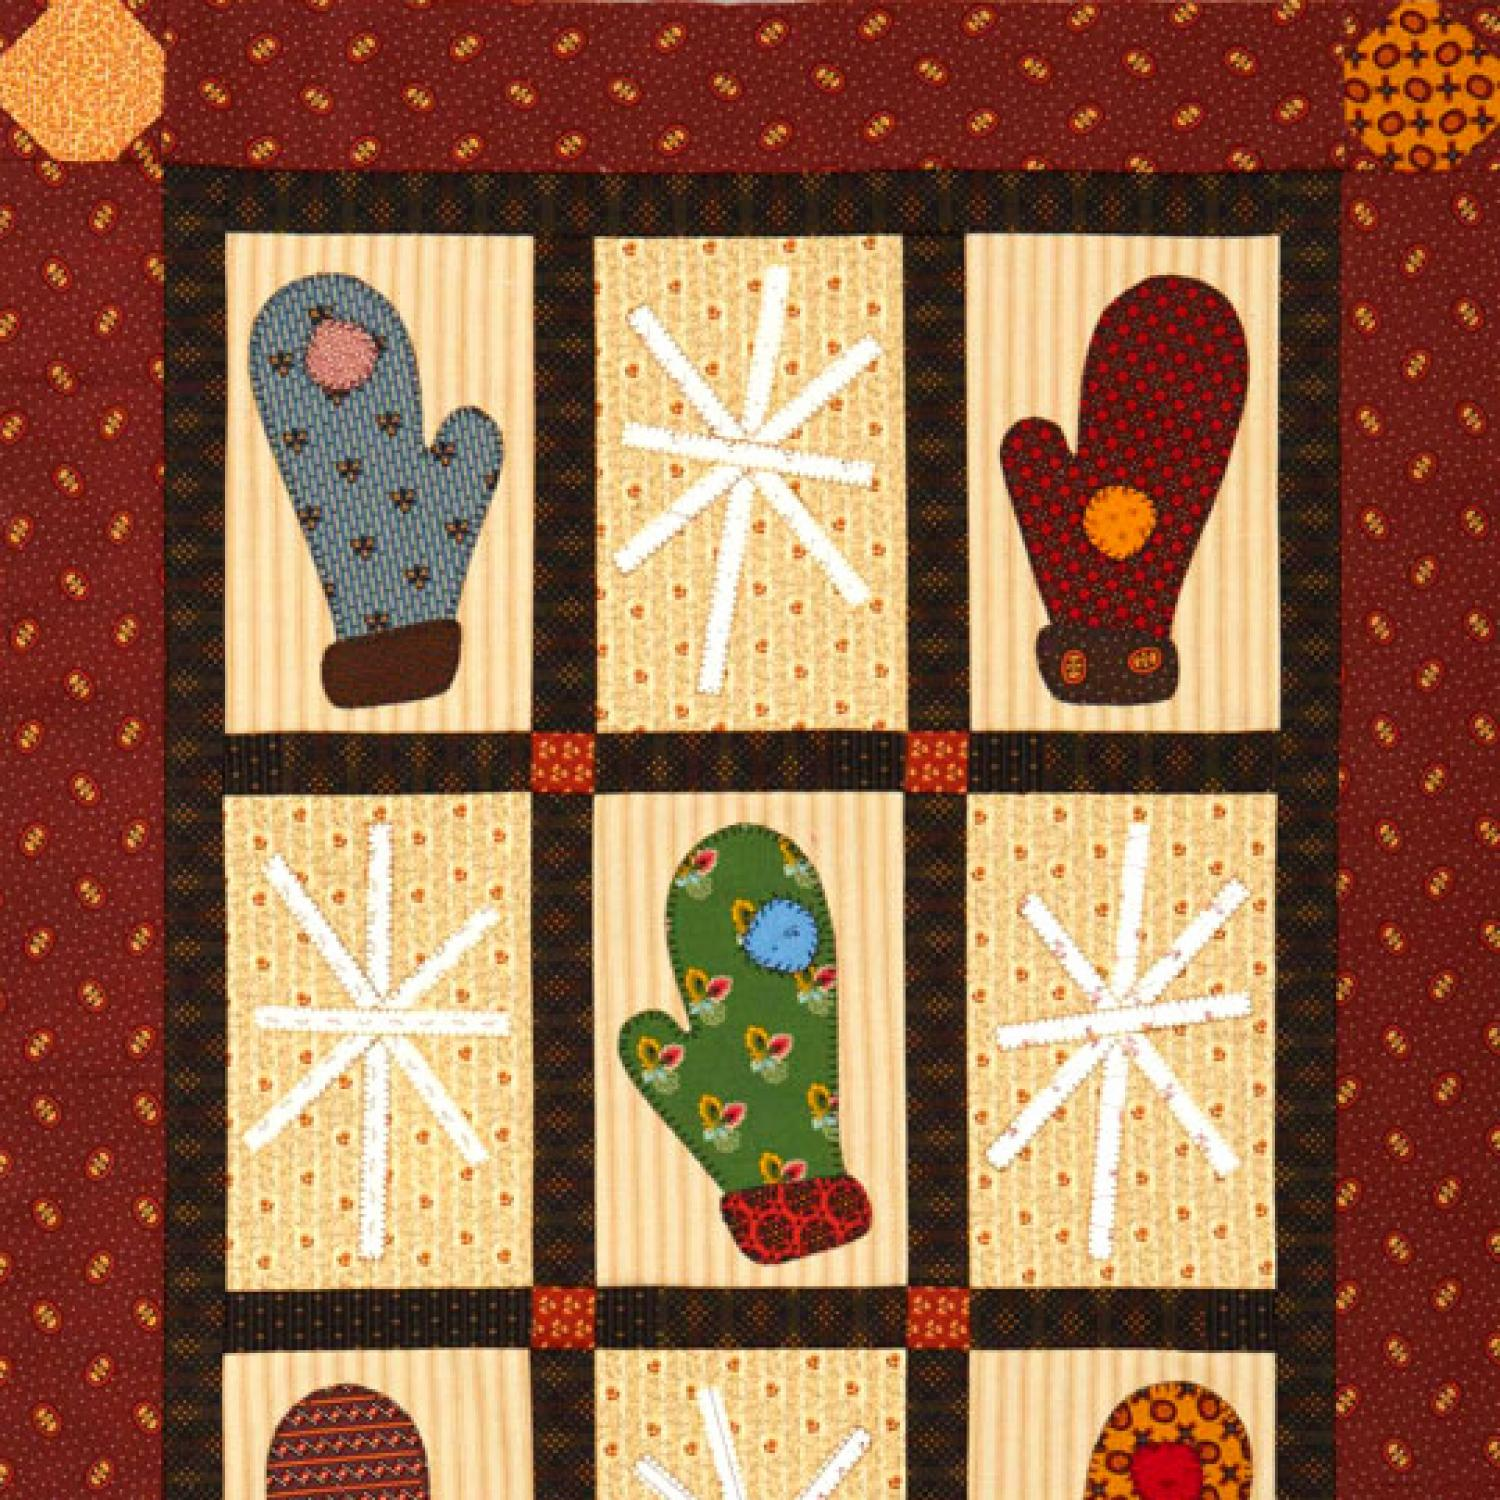 Mittens and Snowflakes Wall Quilt | AllPeopleQuilt.com